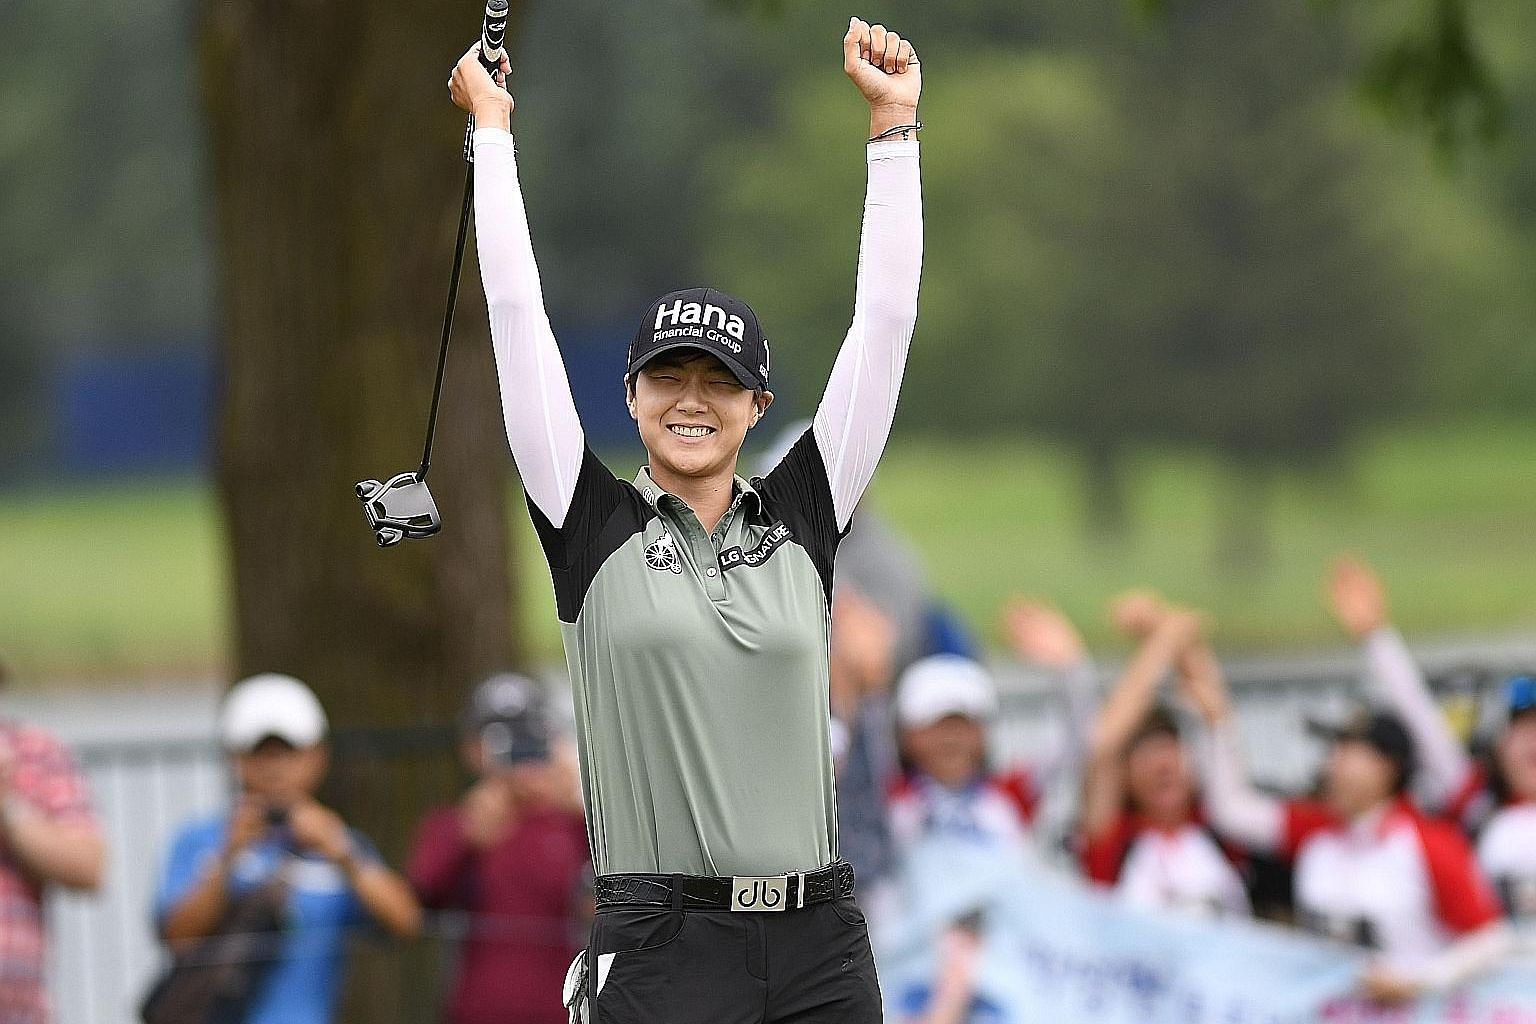 Park Sung-hyun celebrating after making a birdie on the second play-off hole to win the KPMG Women's PGA Championship on Sunday. She did not make a single bogey over the last 30 holes of the tournament.